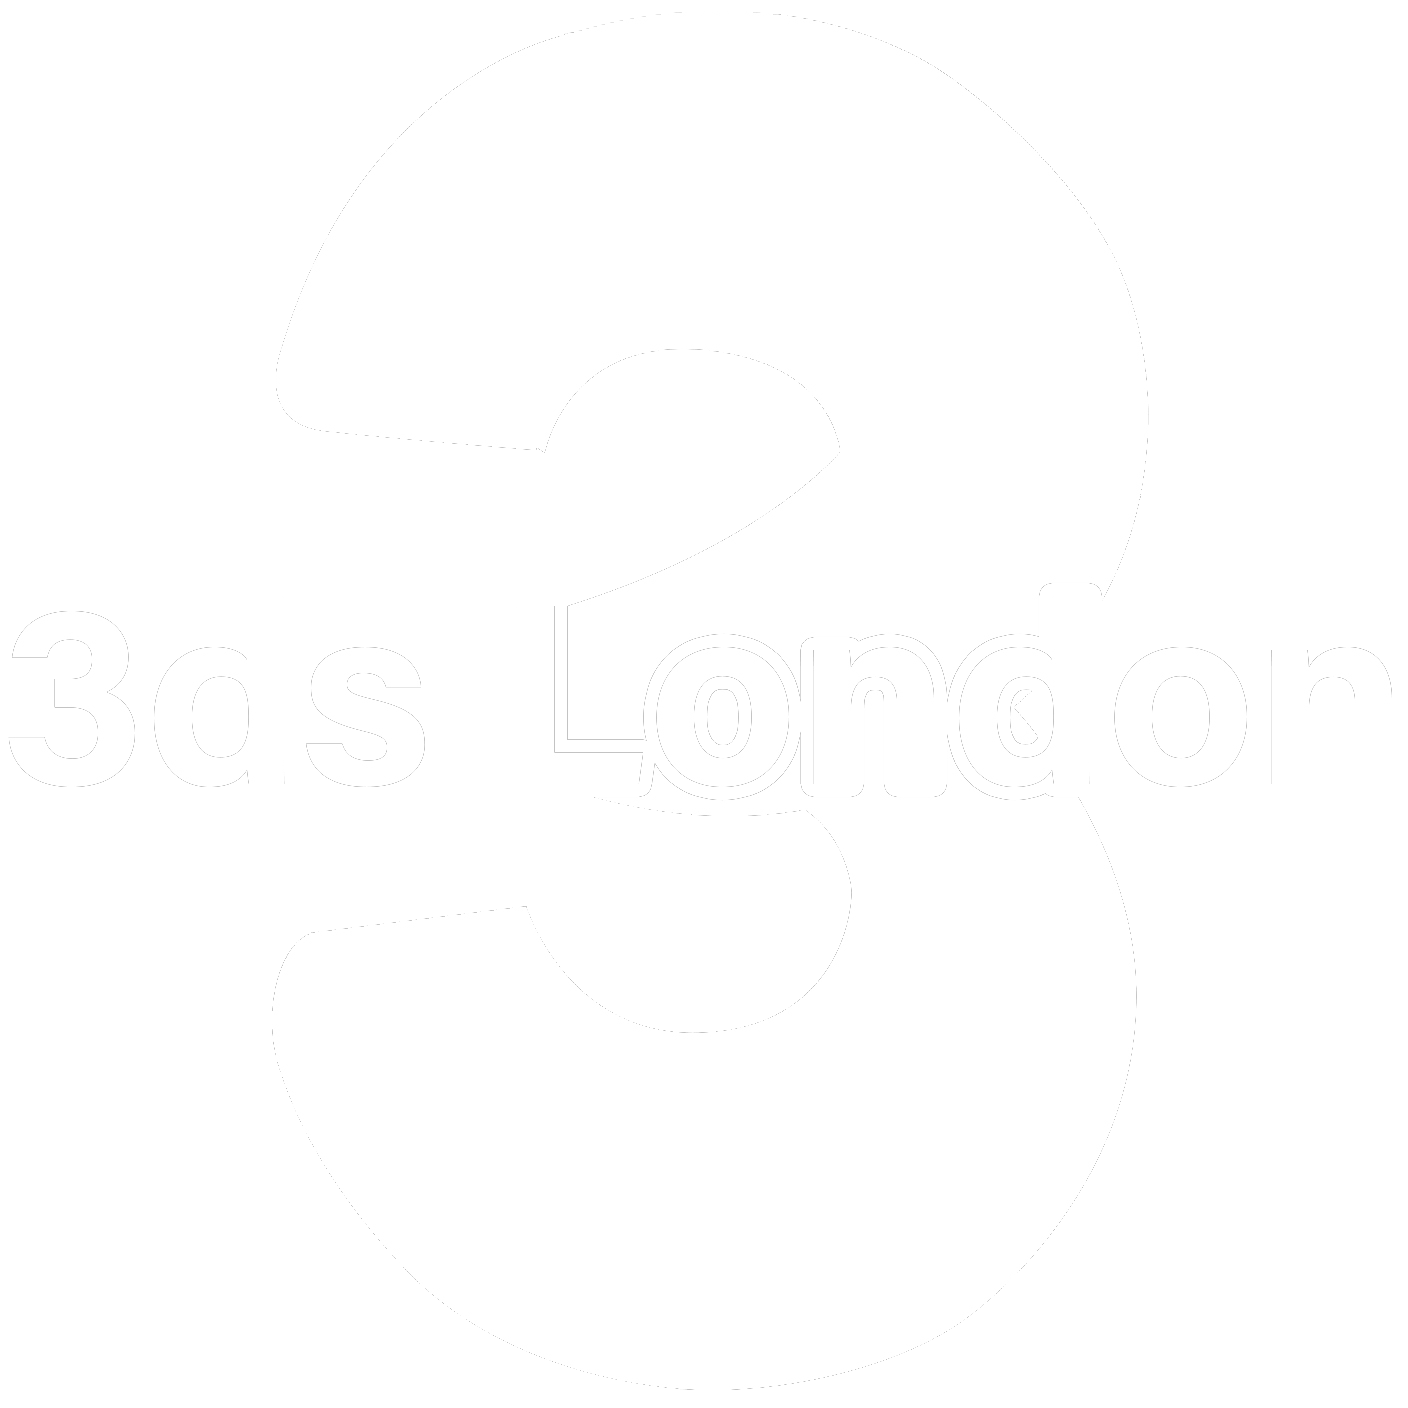 3ds London logo